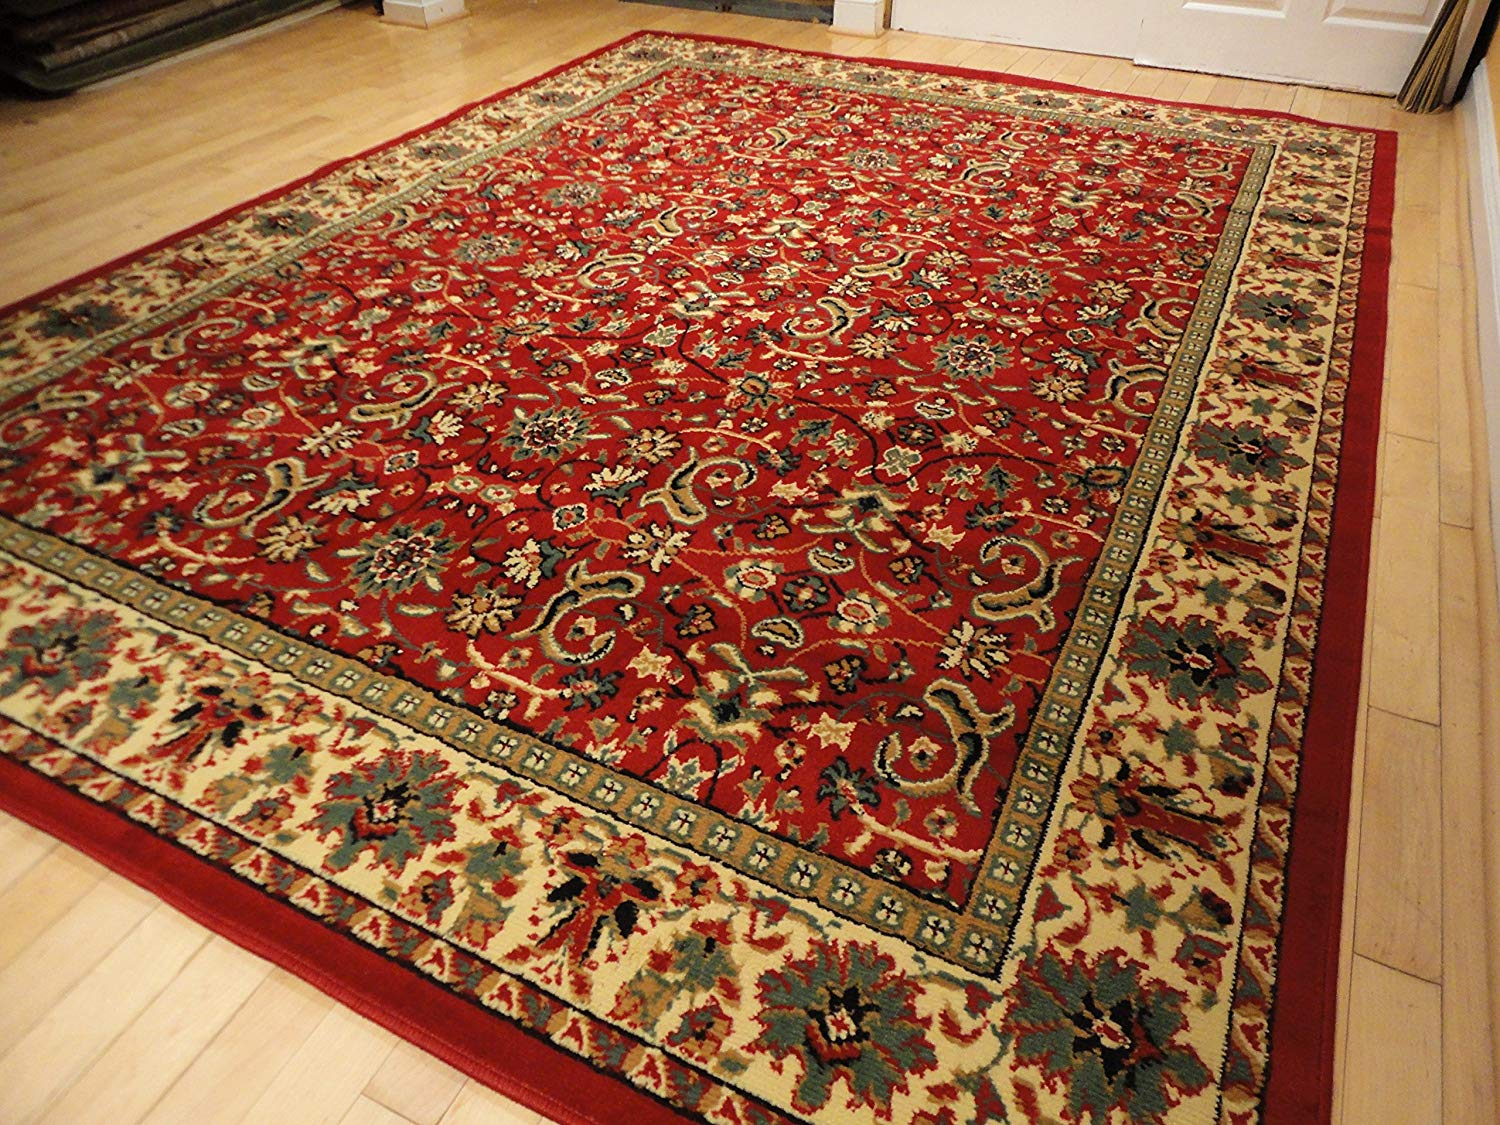 traditional rugs amazon.com: red traditional rug large red 8x11 persian rug red rugs for KAITWME